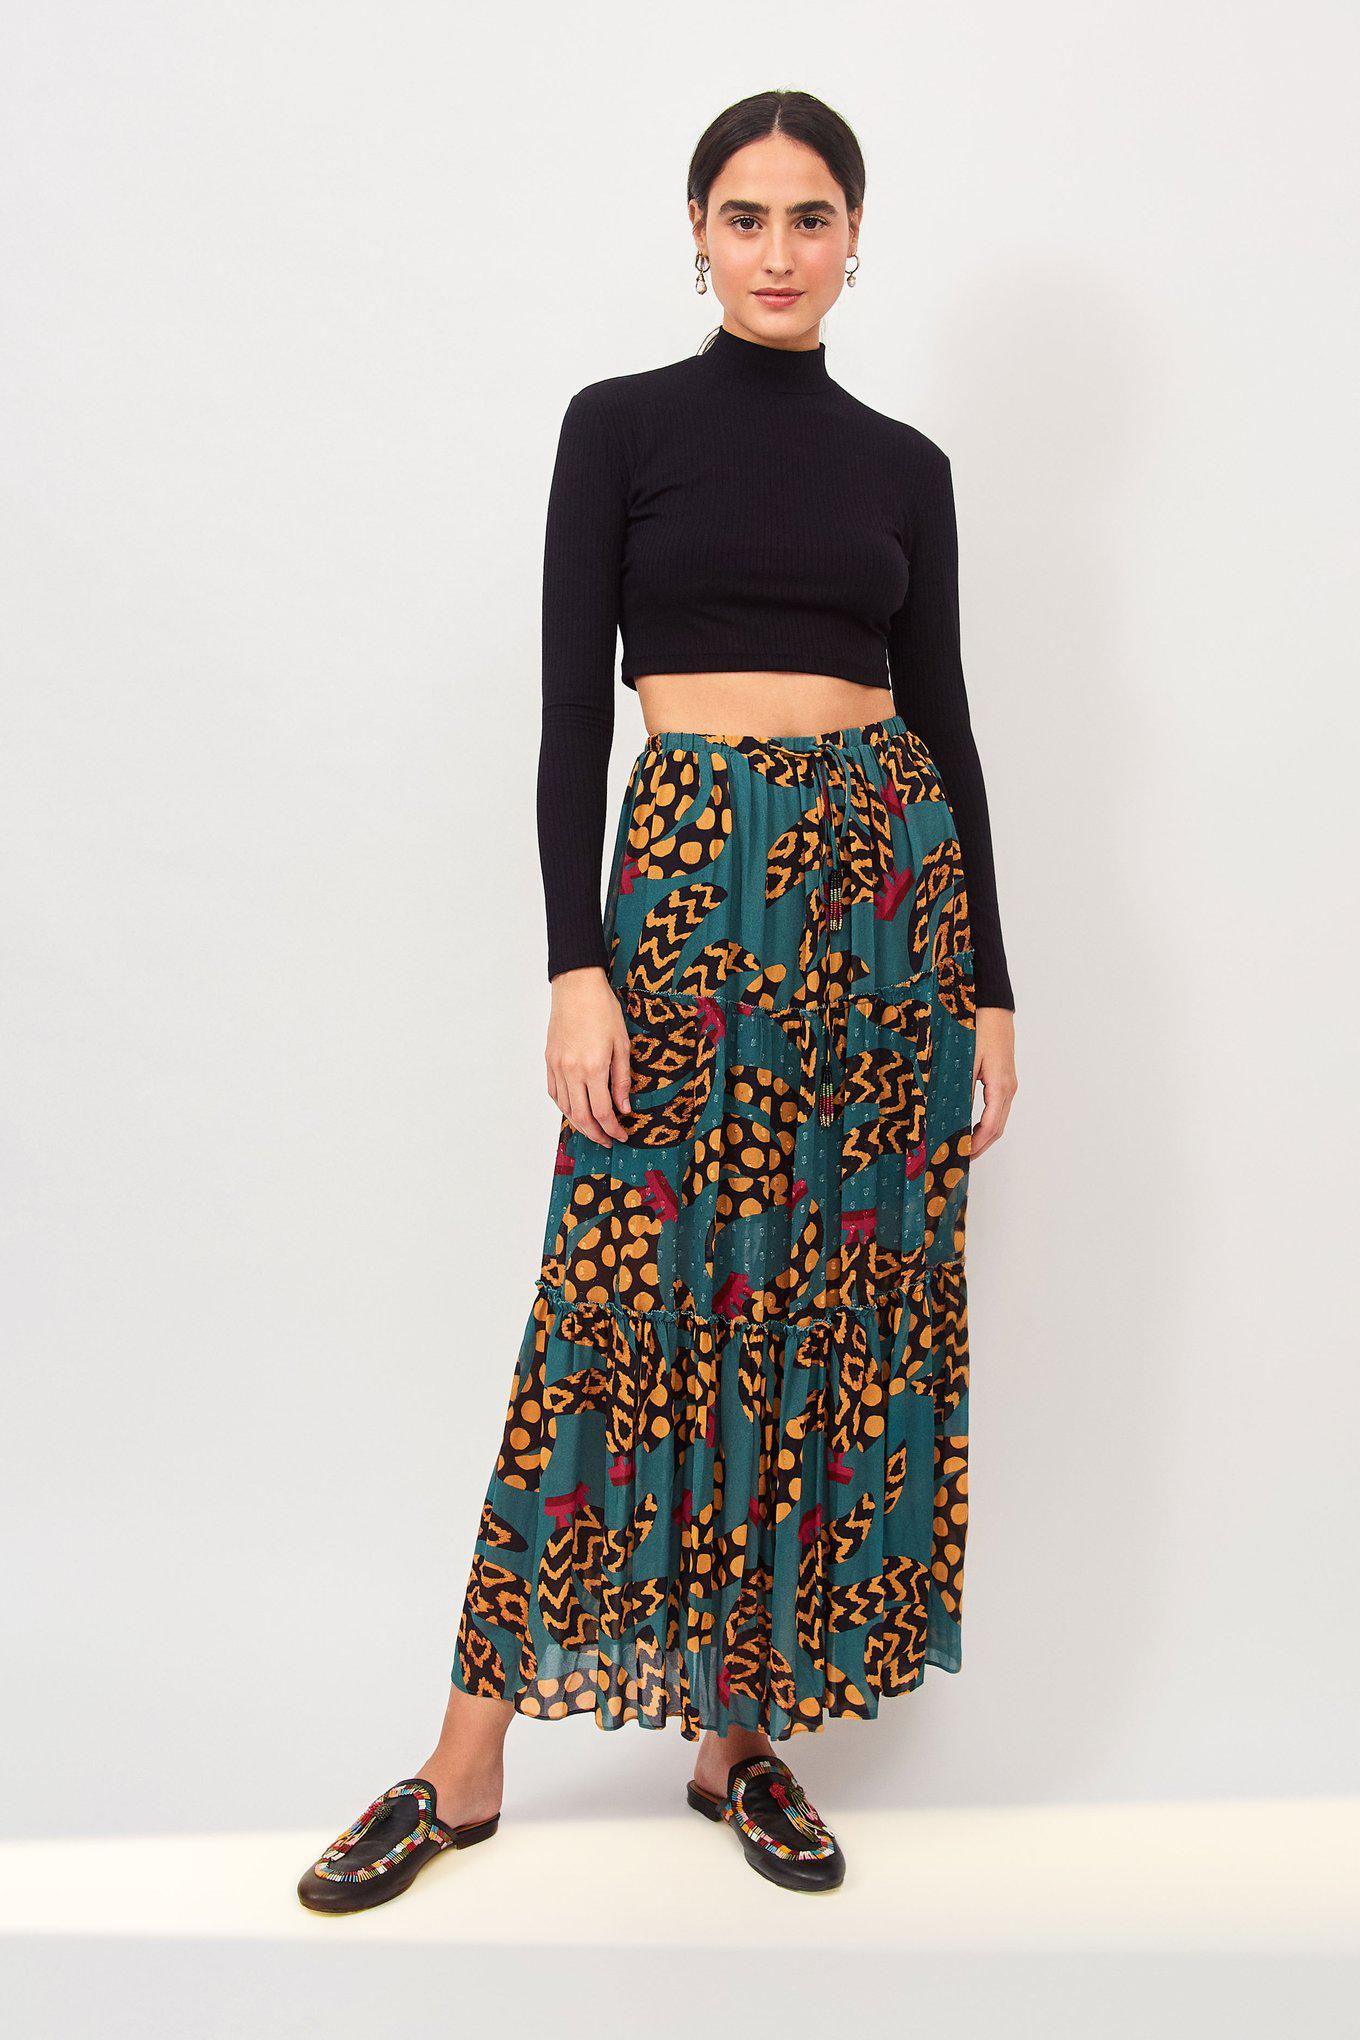 SOLID BLACK CROPPED TOP 1